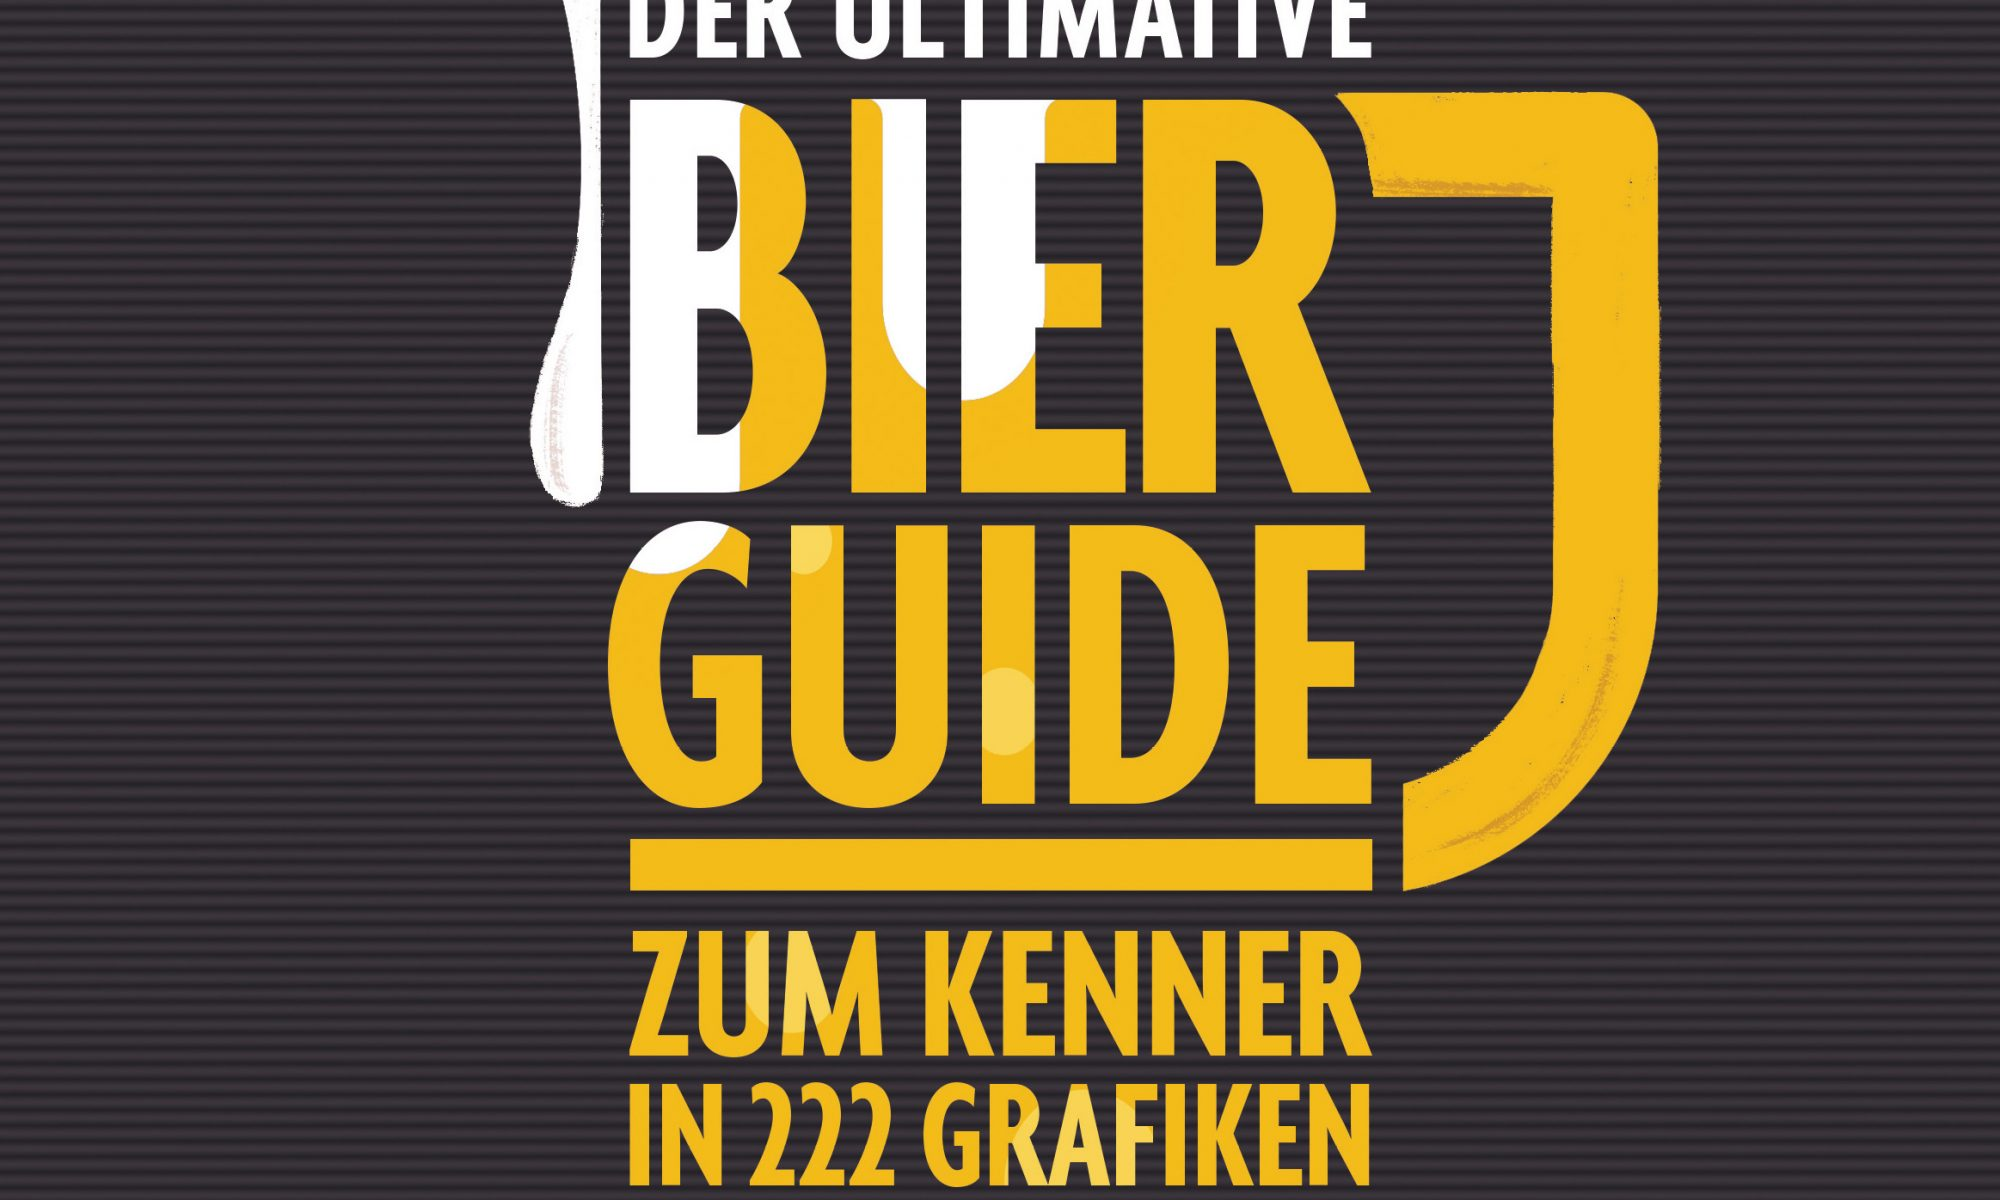 Der ultimative Bier-Guide von Suenje Nicolaysen HHopcast Interview Verlosung